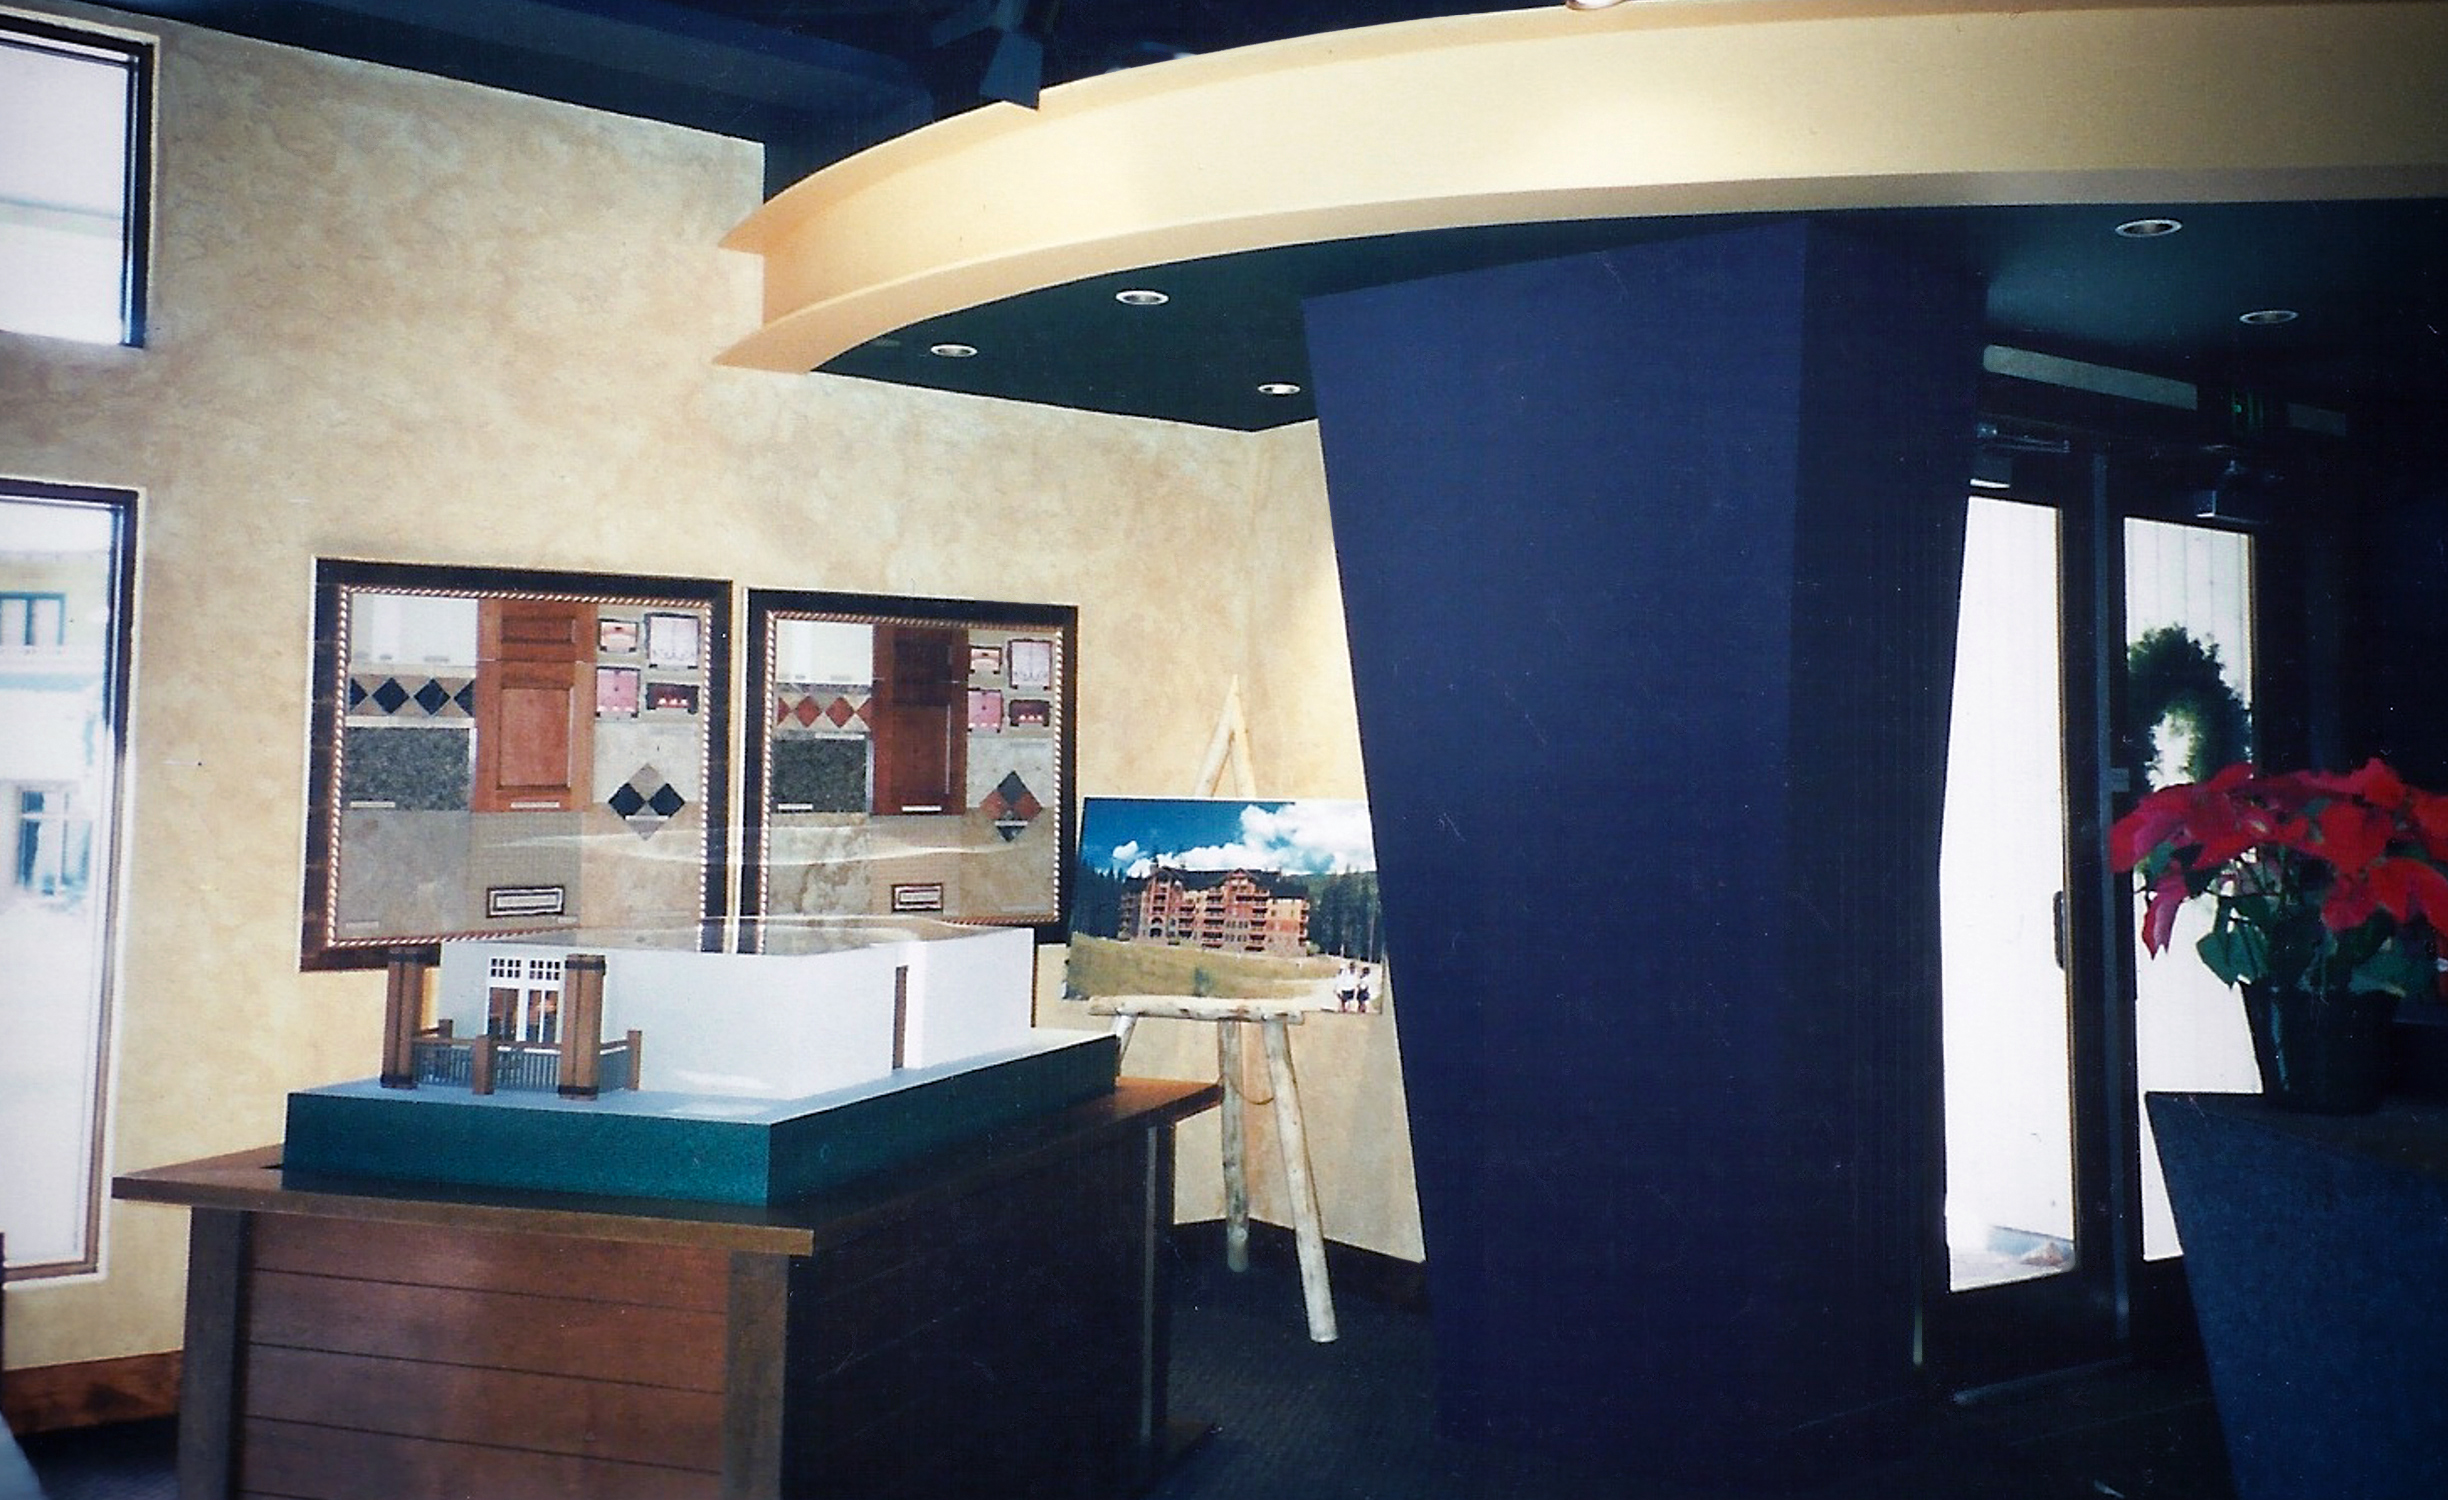 c1ommercial - keystone discovery center.jpg